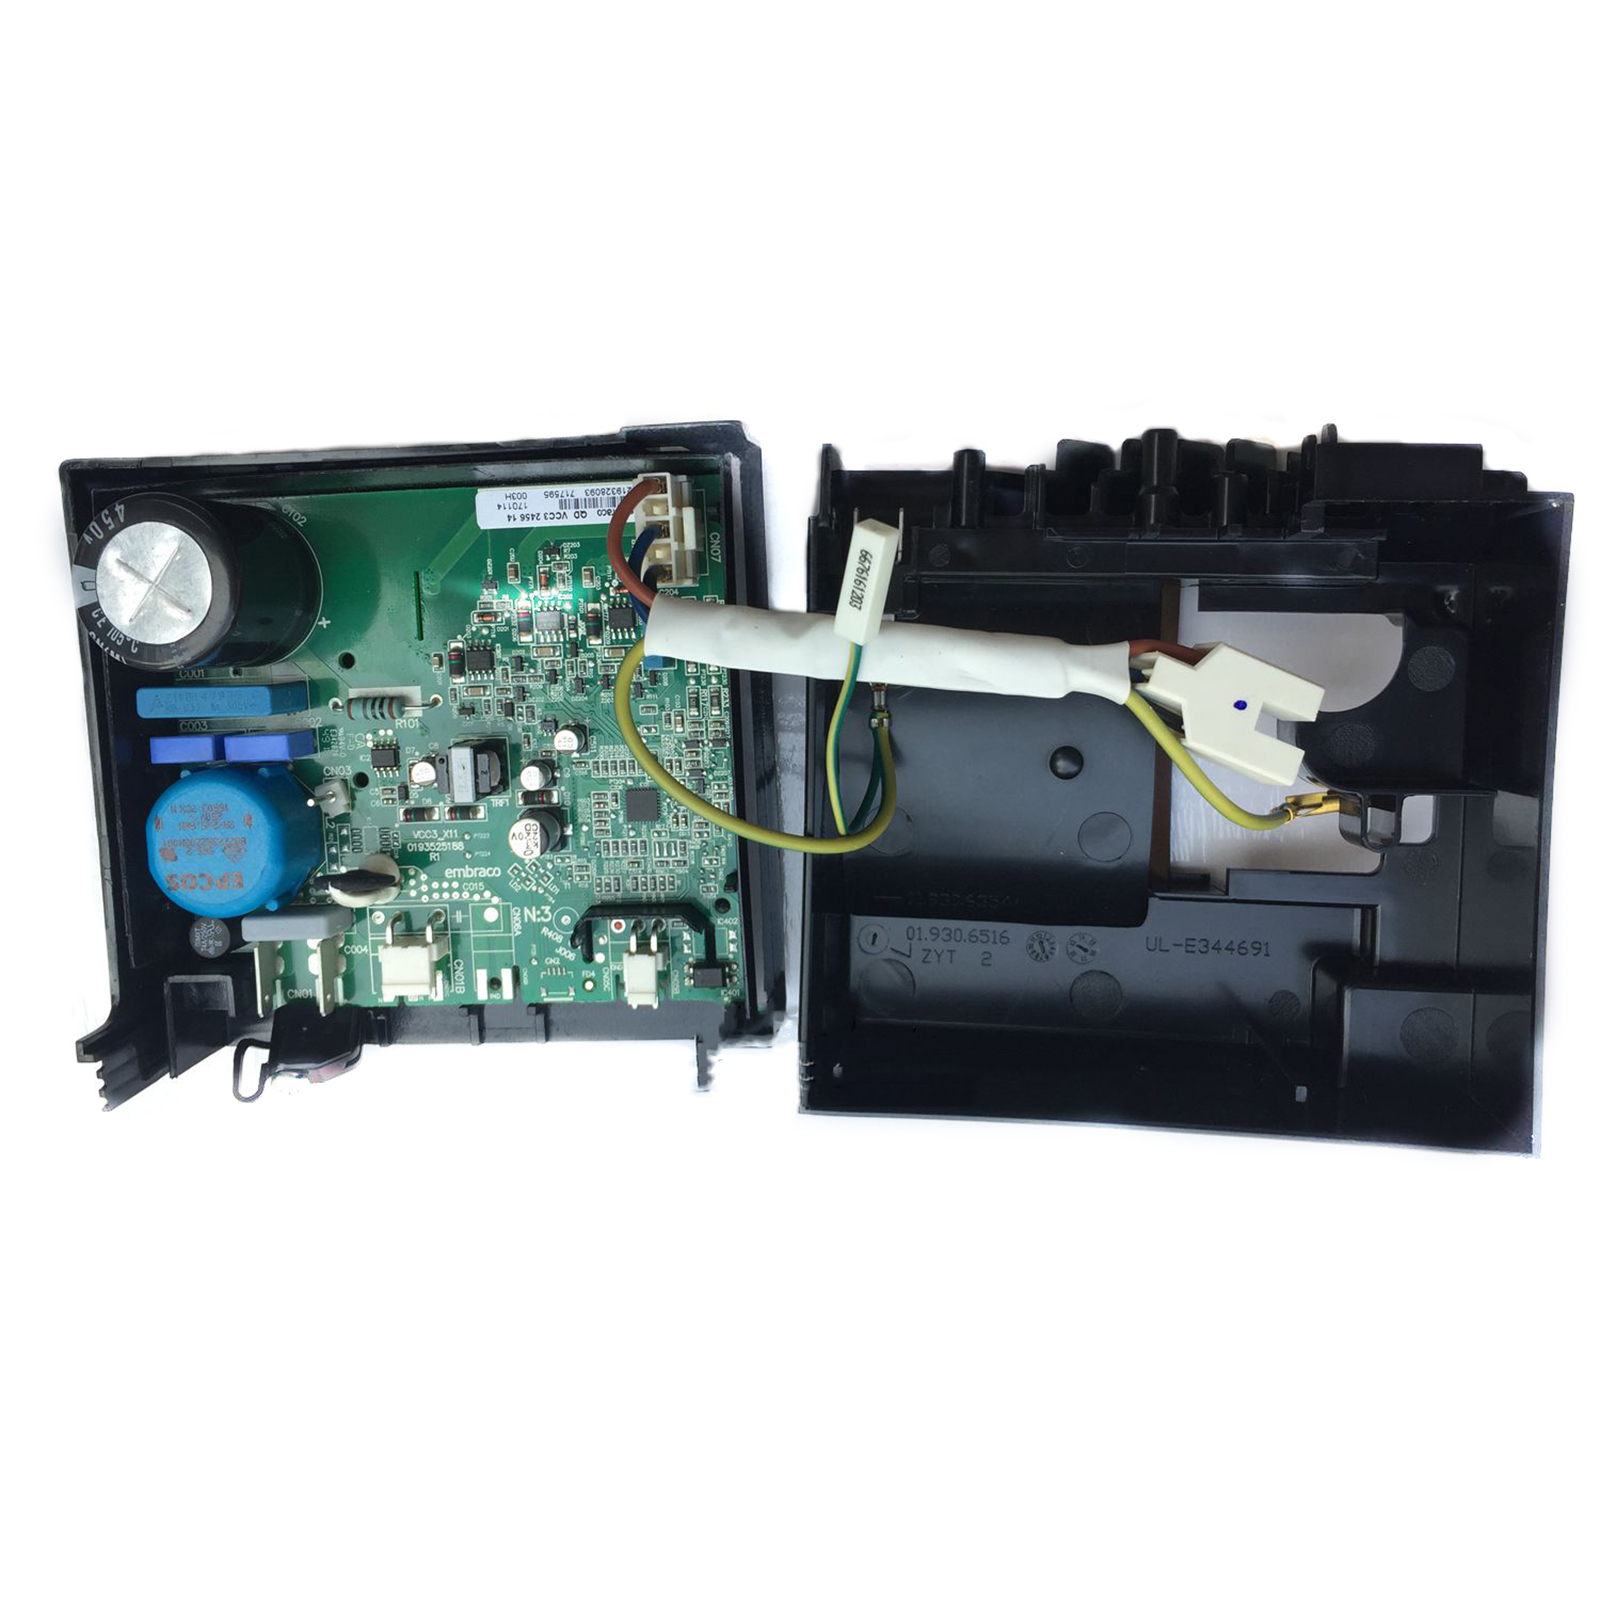 Inverter Board Driver Board 0193525188 Embraco QD VCC3 2456 14 F 02 For Meiling Hair Refrigerator Parts Black